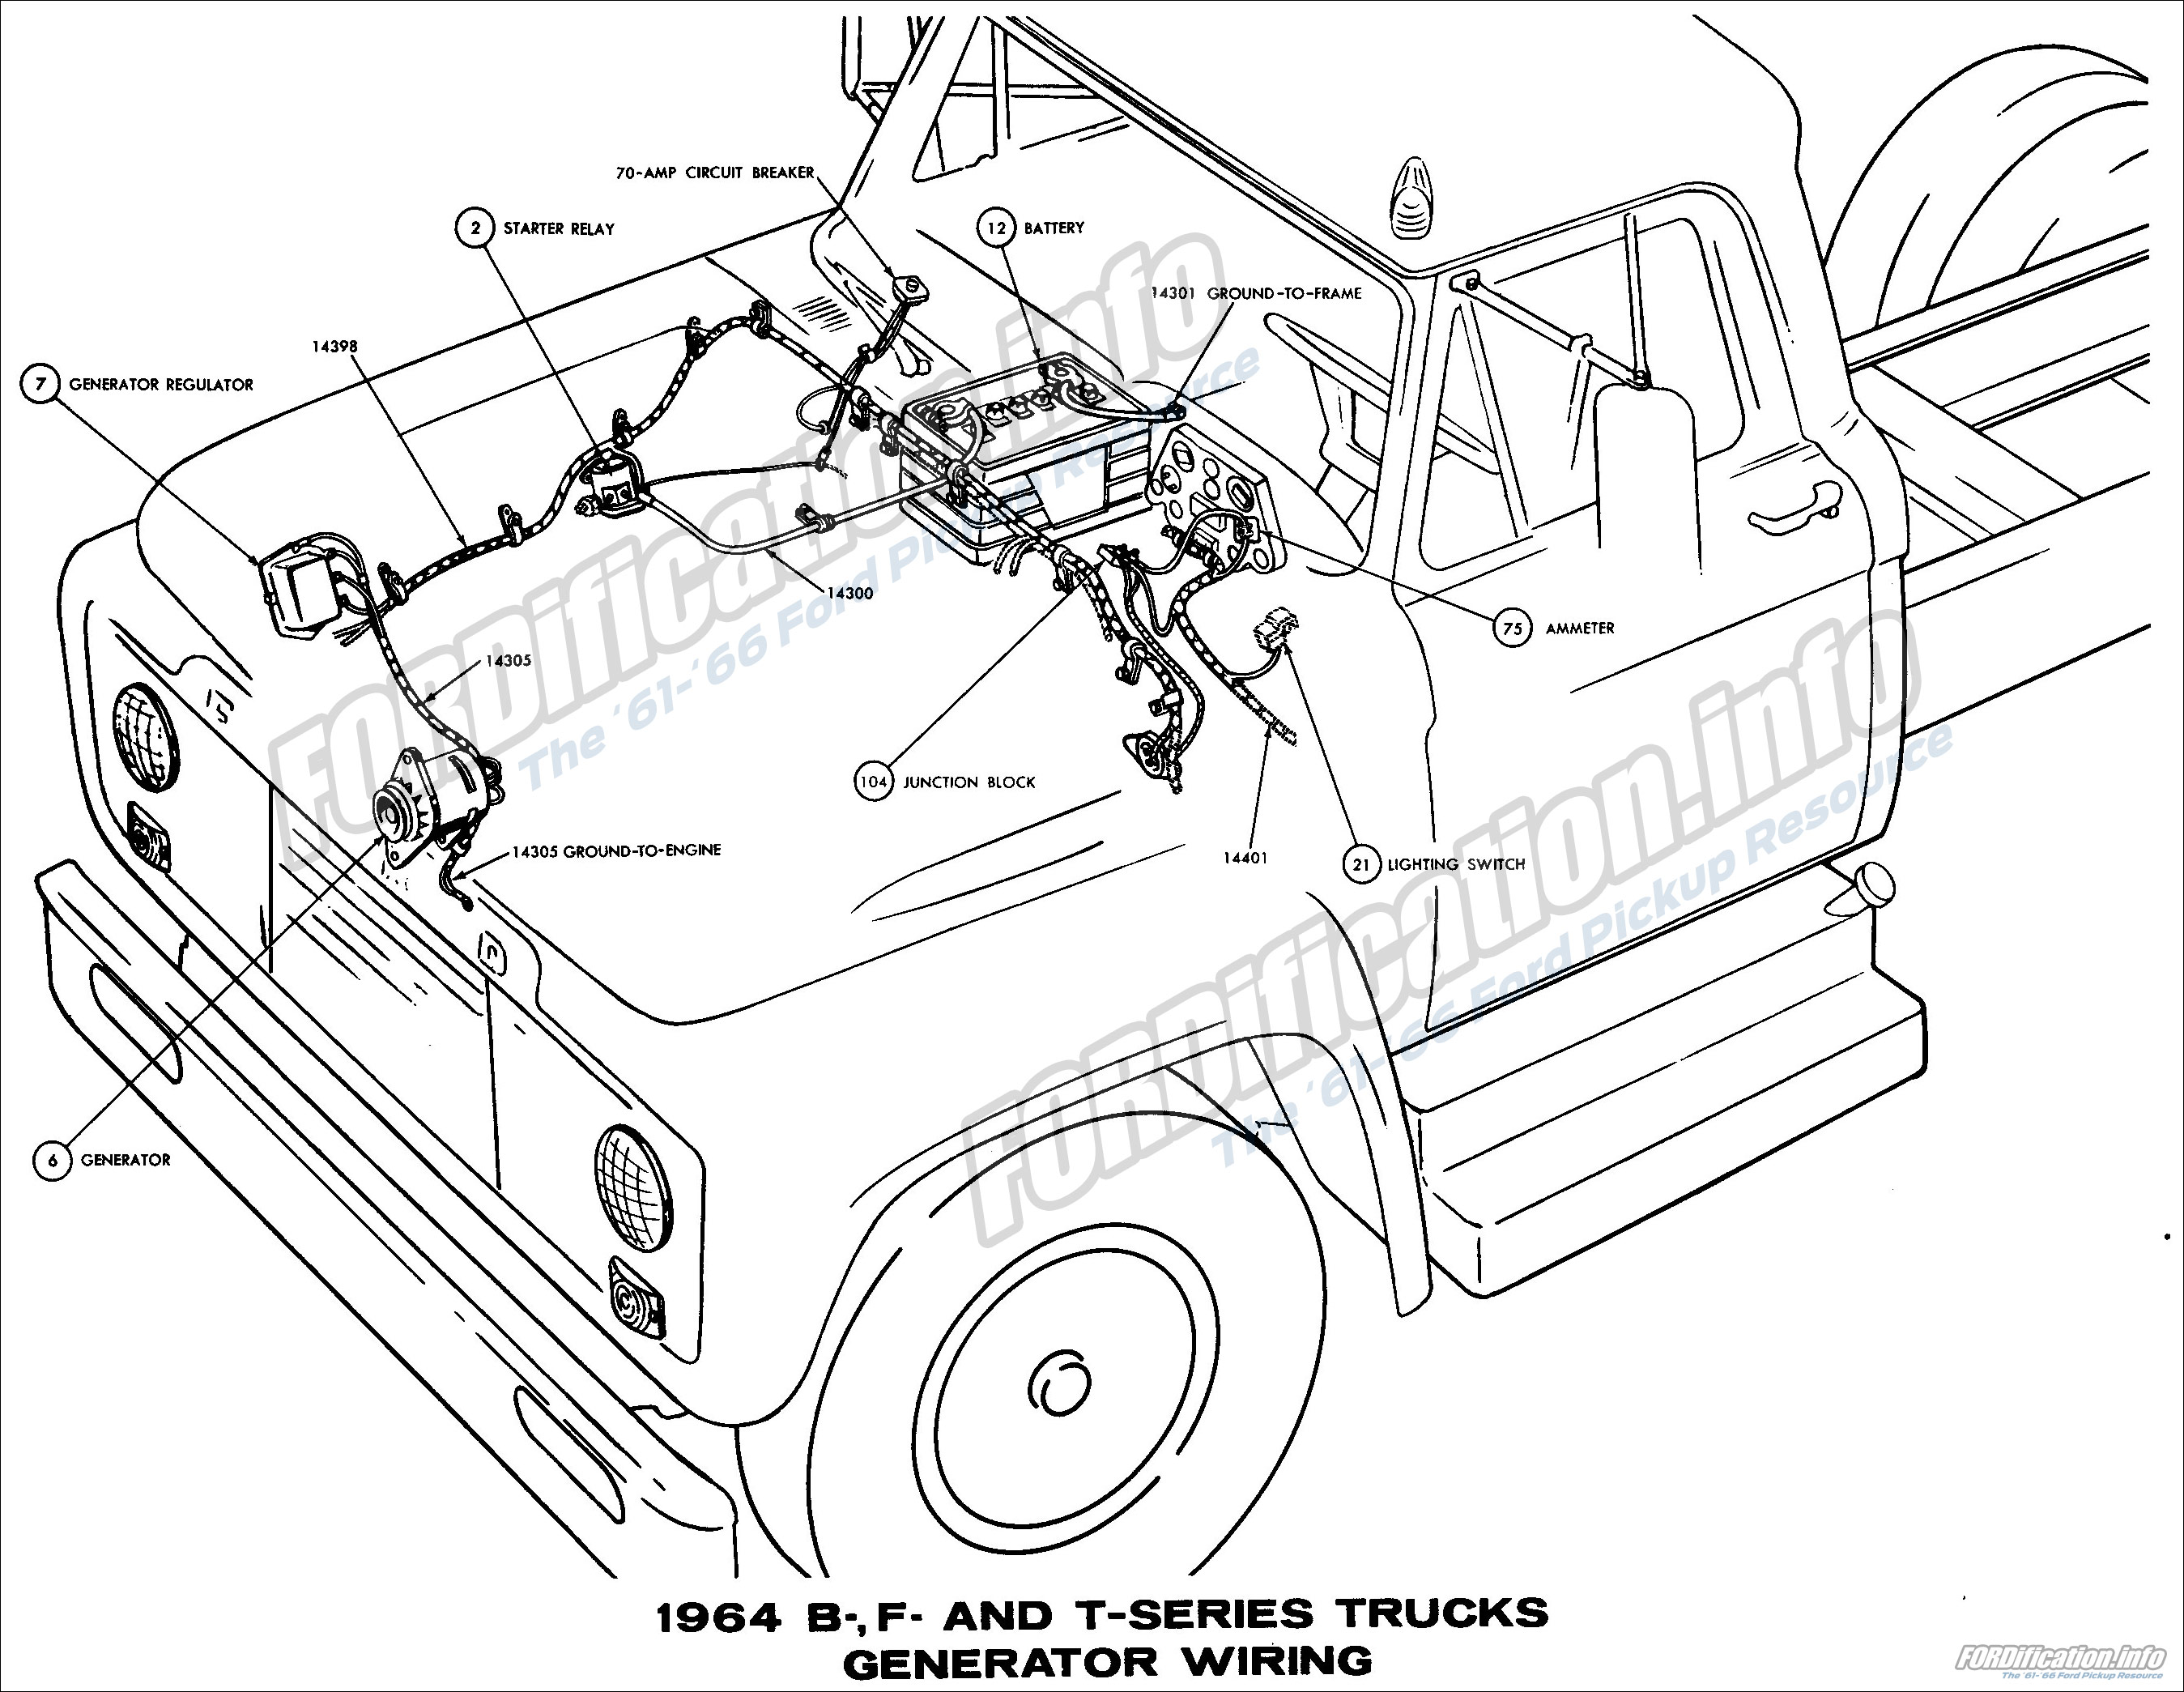 Transistorized ignition schematic 1964 b f and t series trucks generator wiring